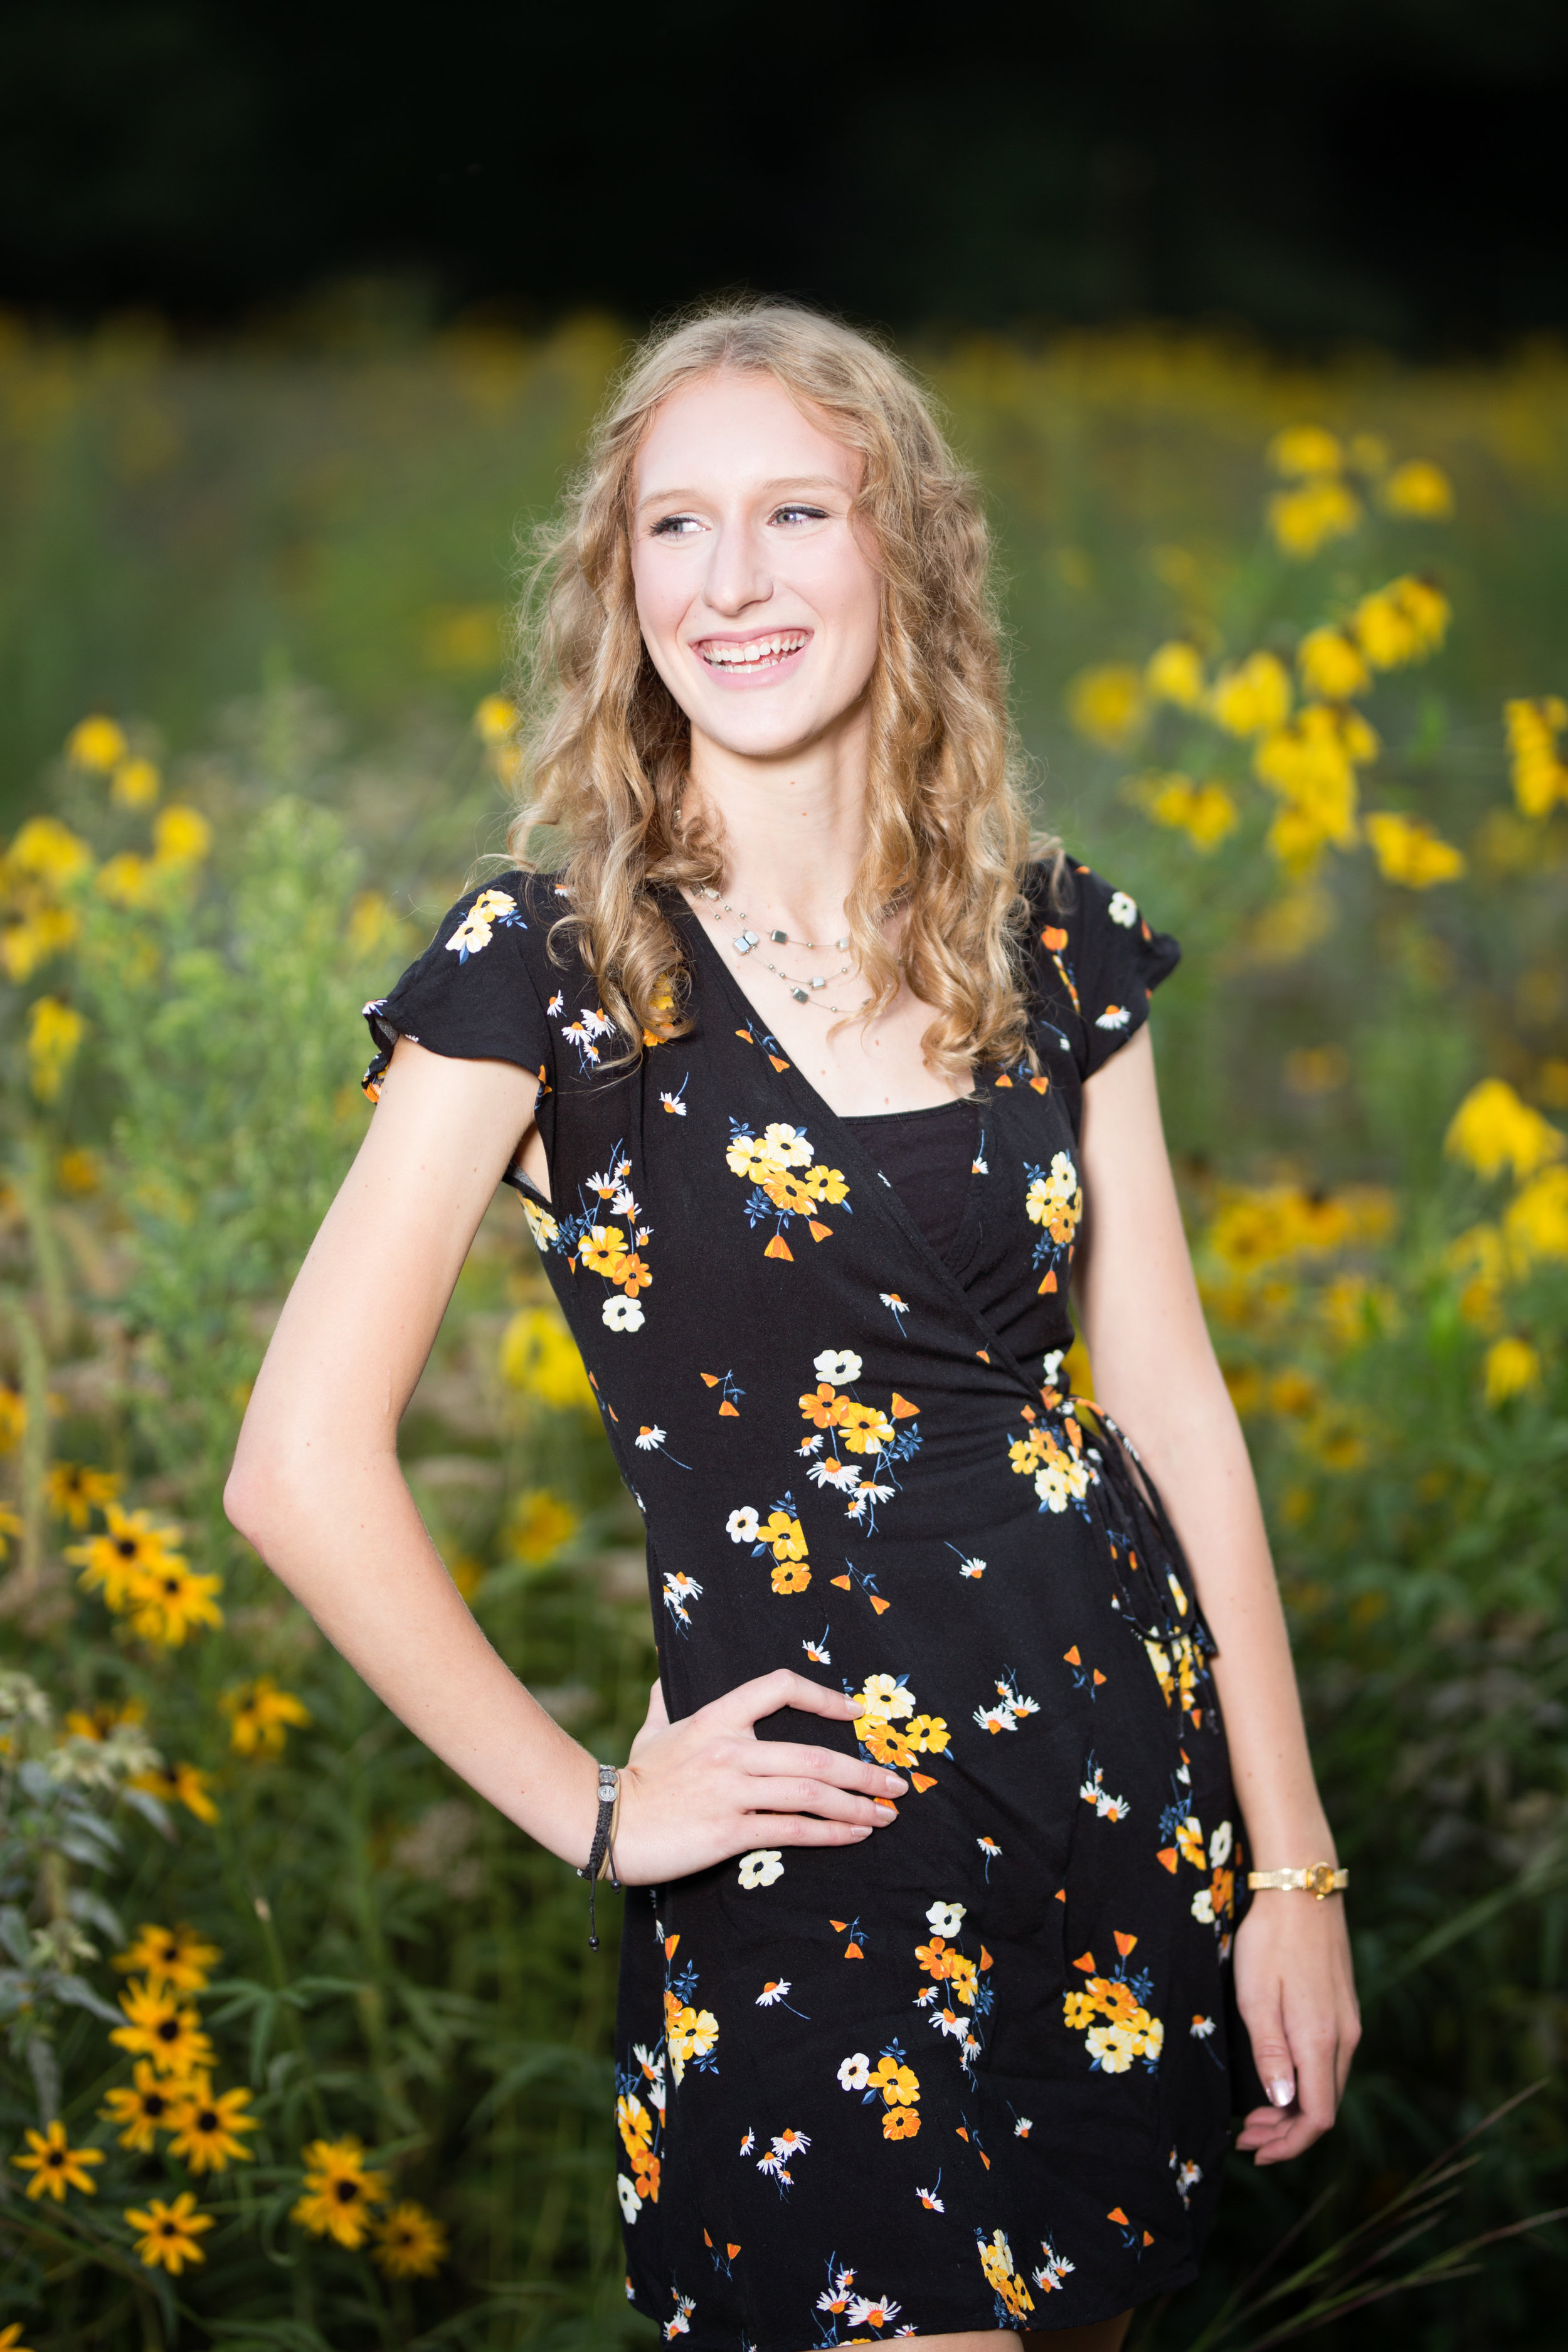 girl senior picture with yellow flowers